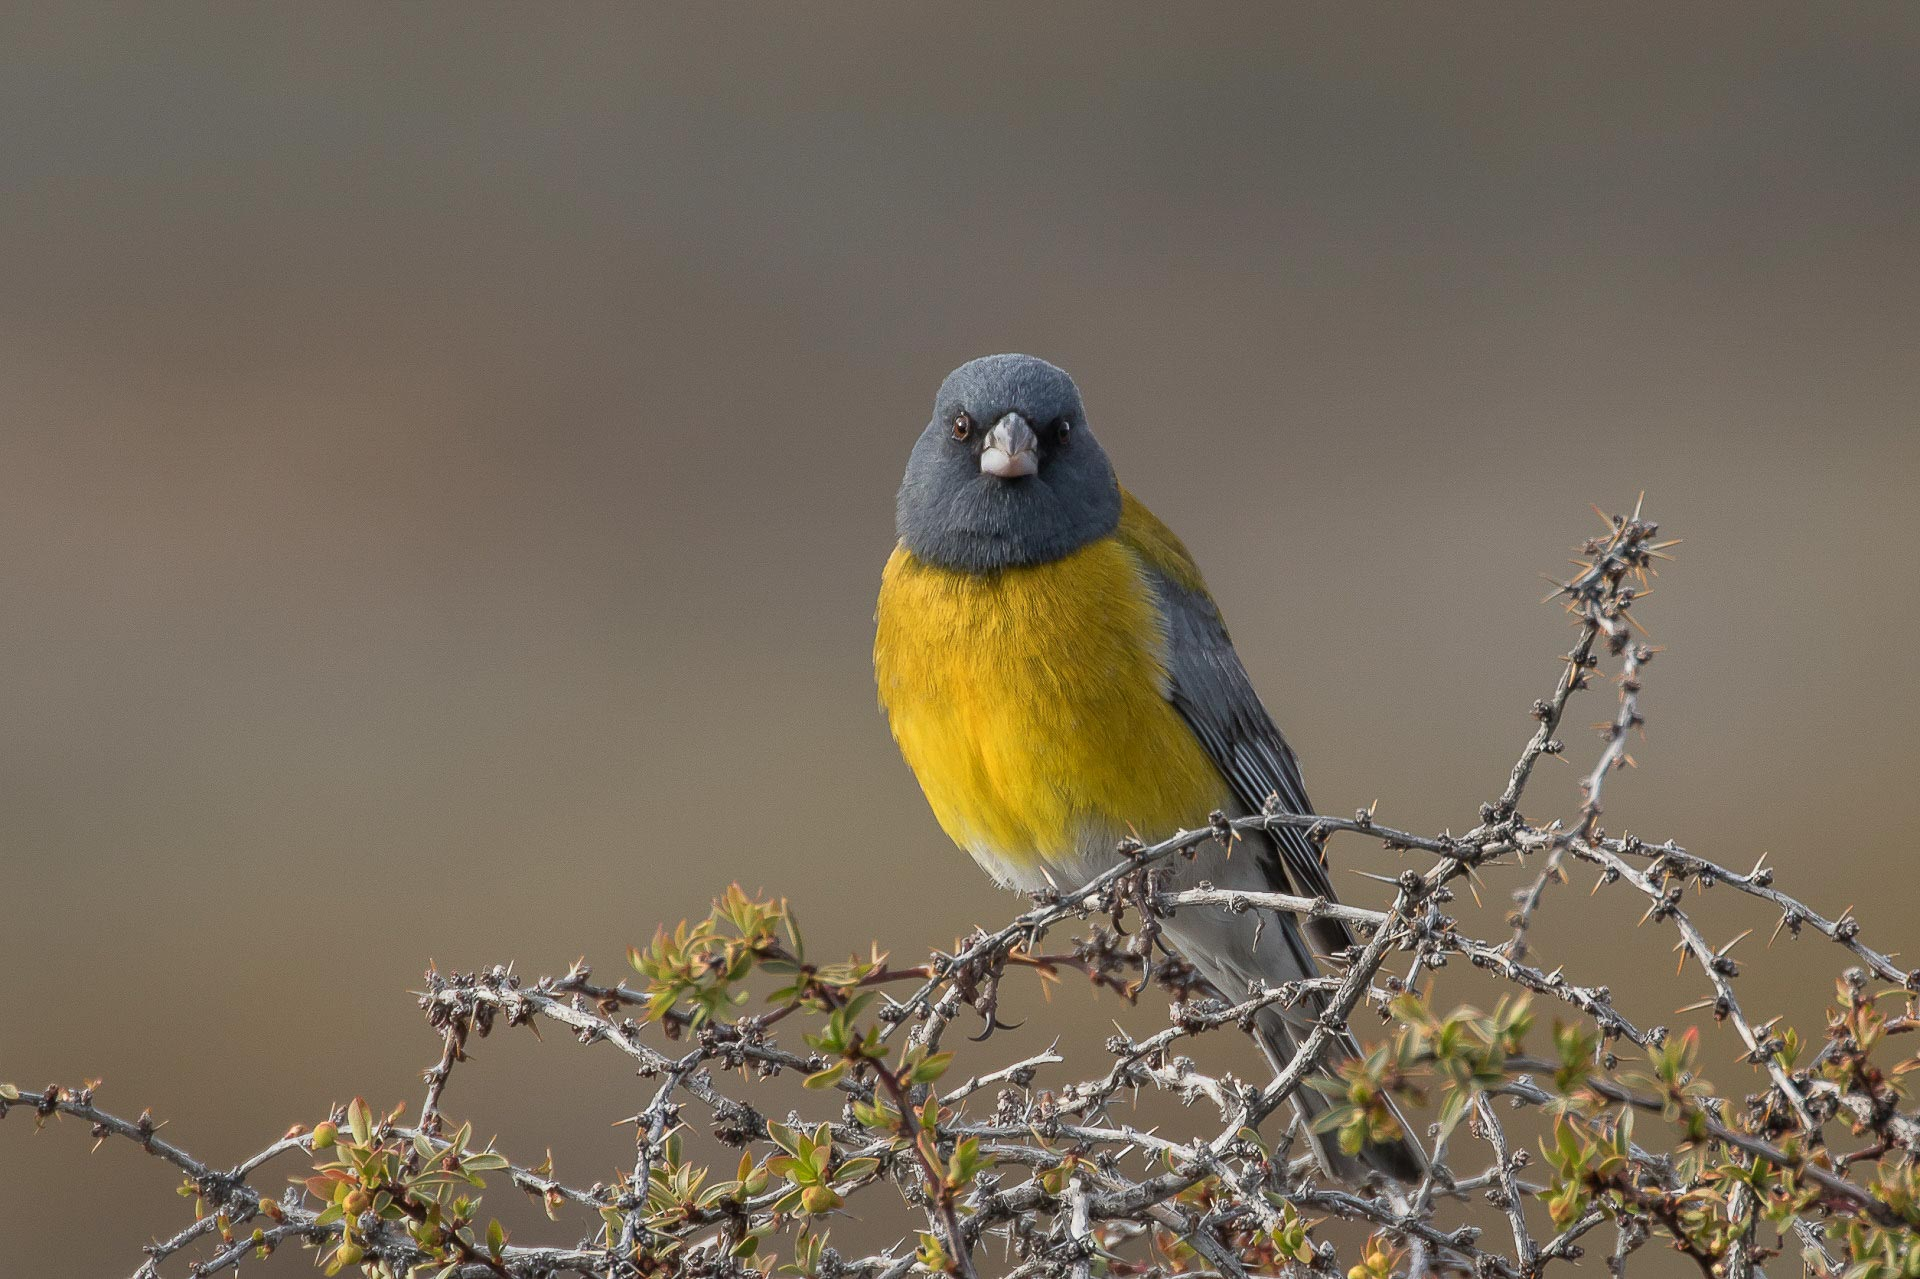 Sierra-finch, Grey-hooded